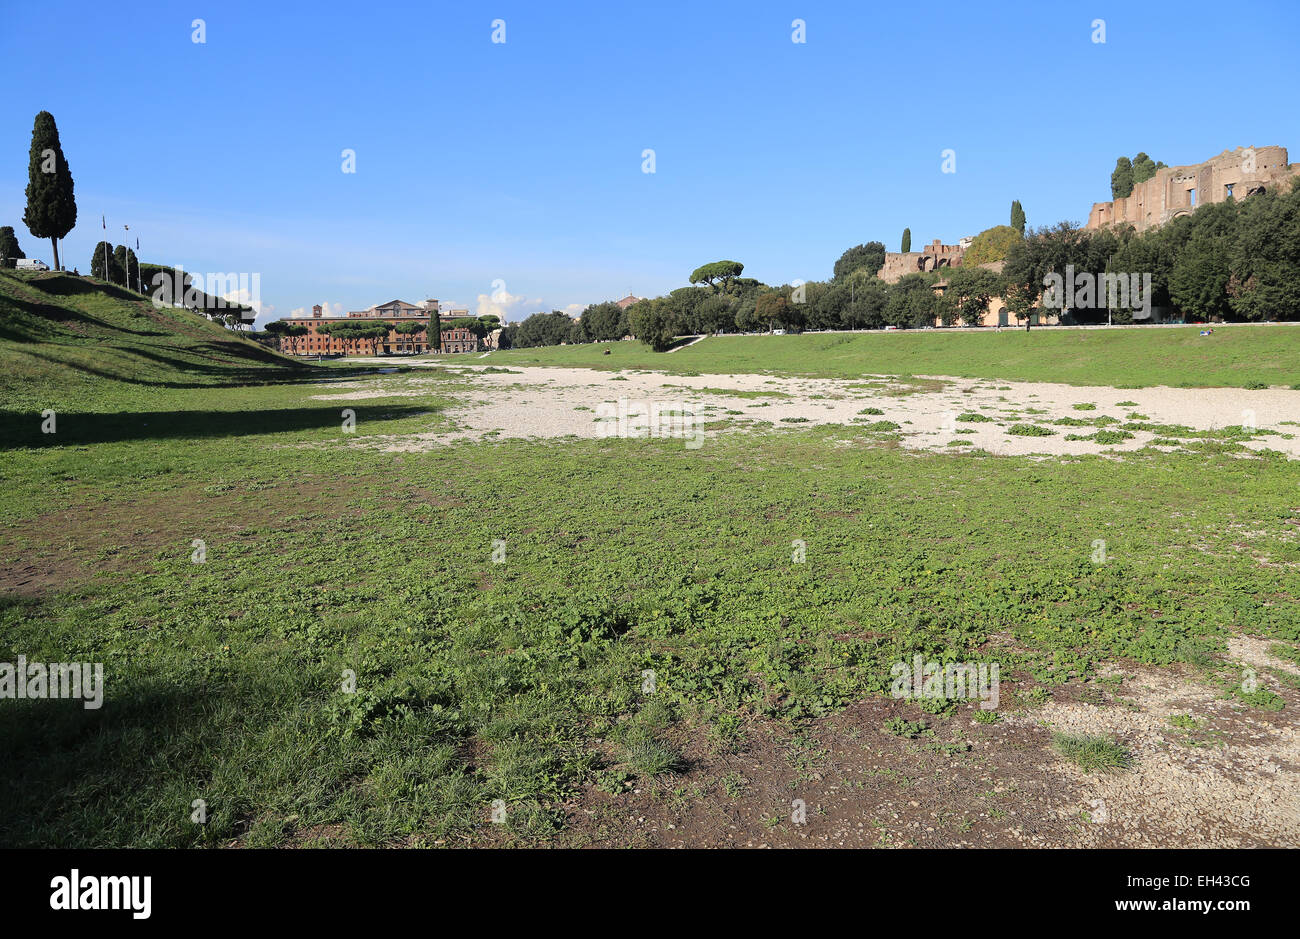 Italy. Rome. Circus Maximus. Ancient Roman chariot racing stadium. View. Ruins. - Stock Image